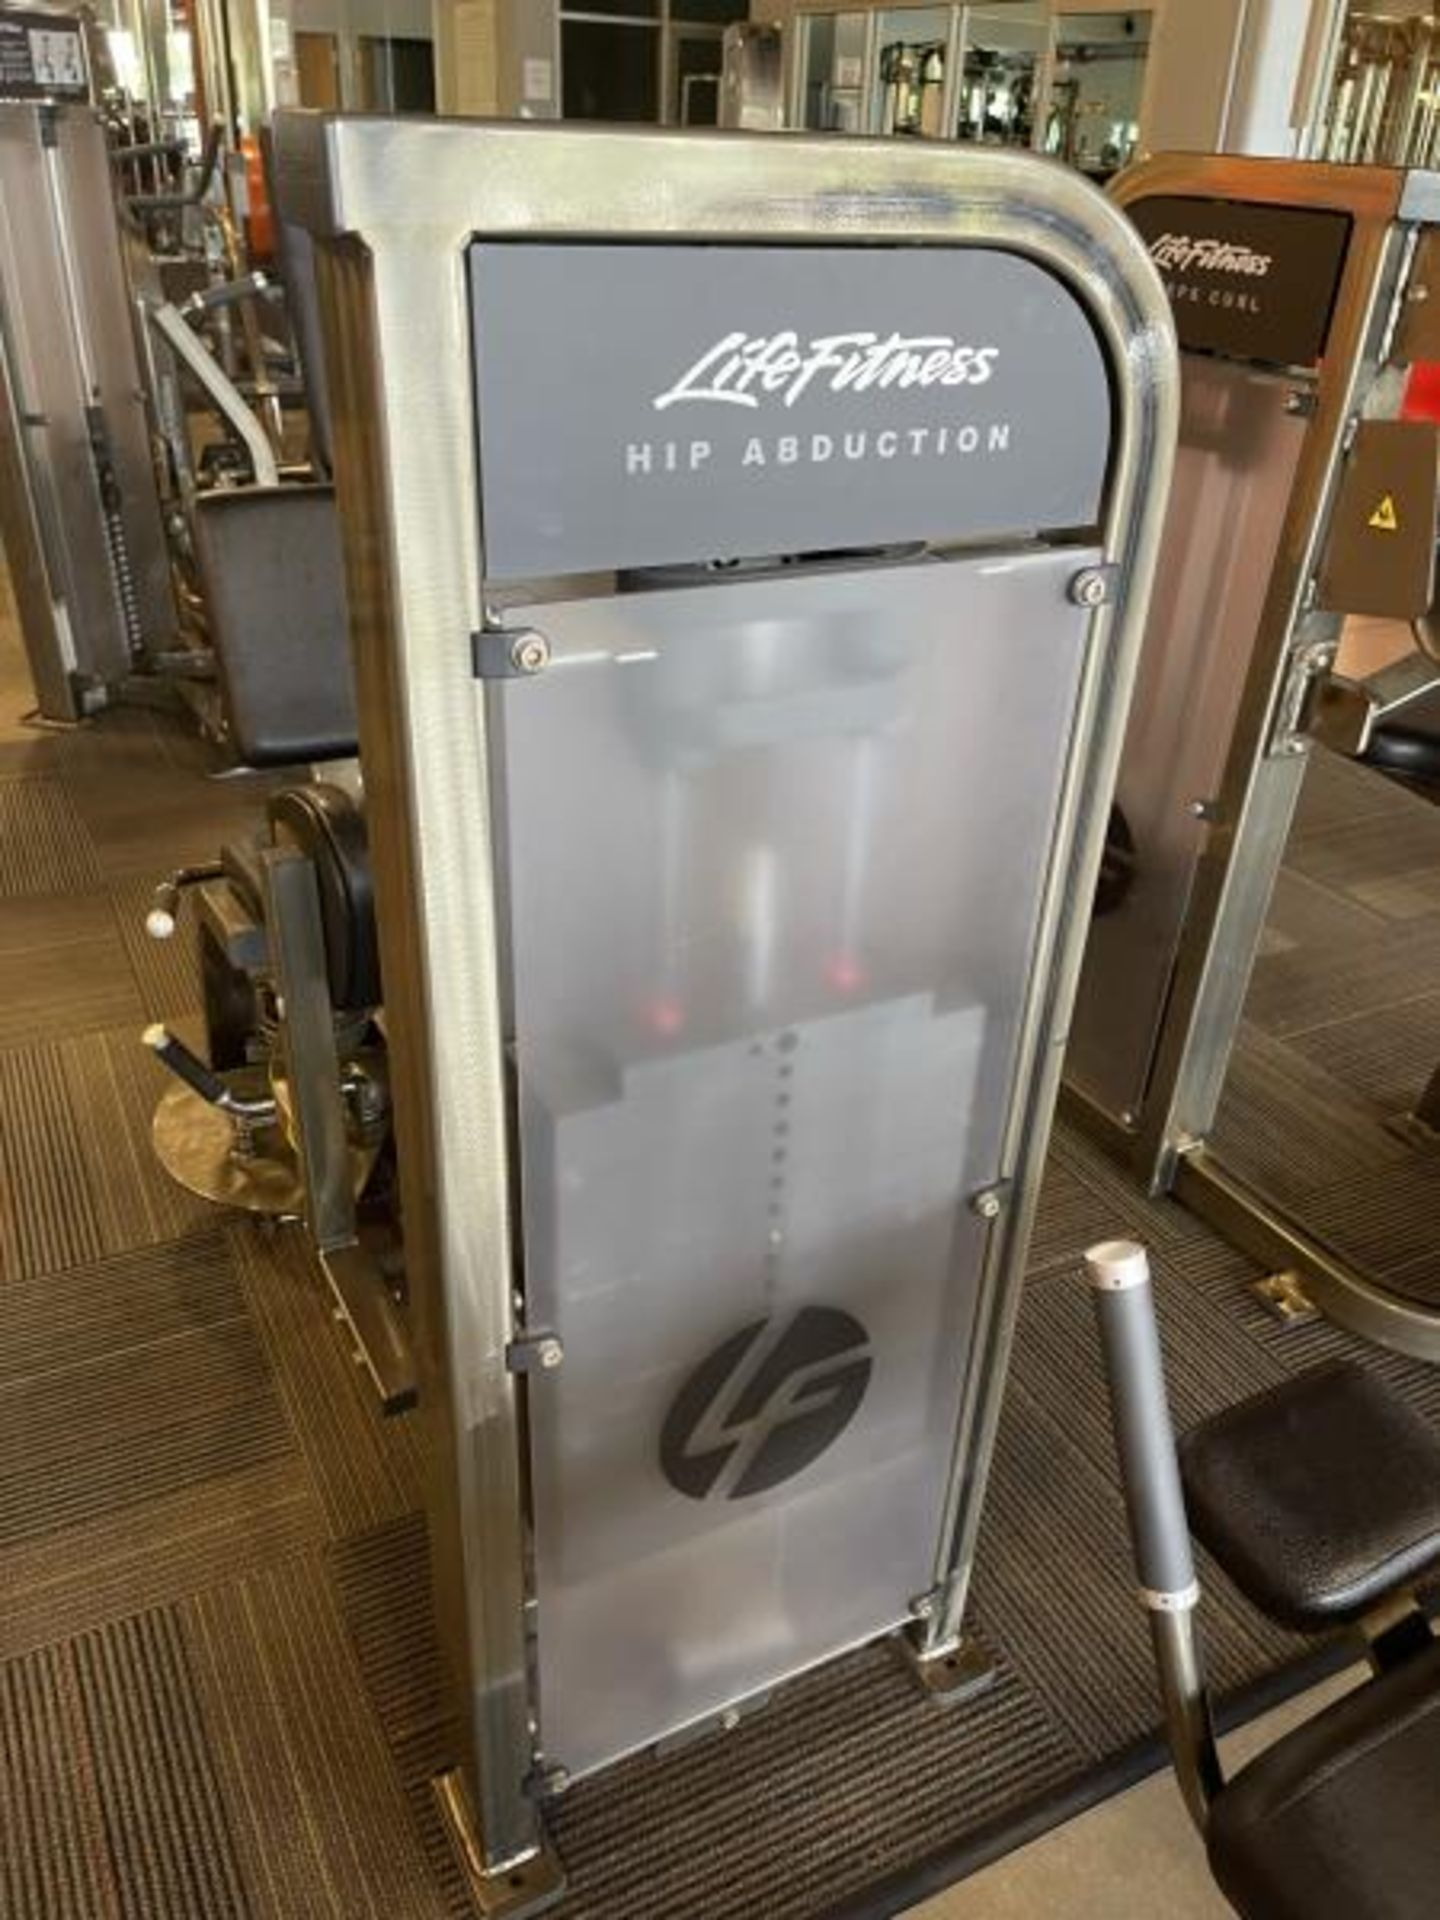 Life Fitness Hip Abduction M: PSHABSE - Image 5 of 6